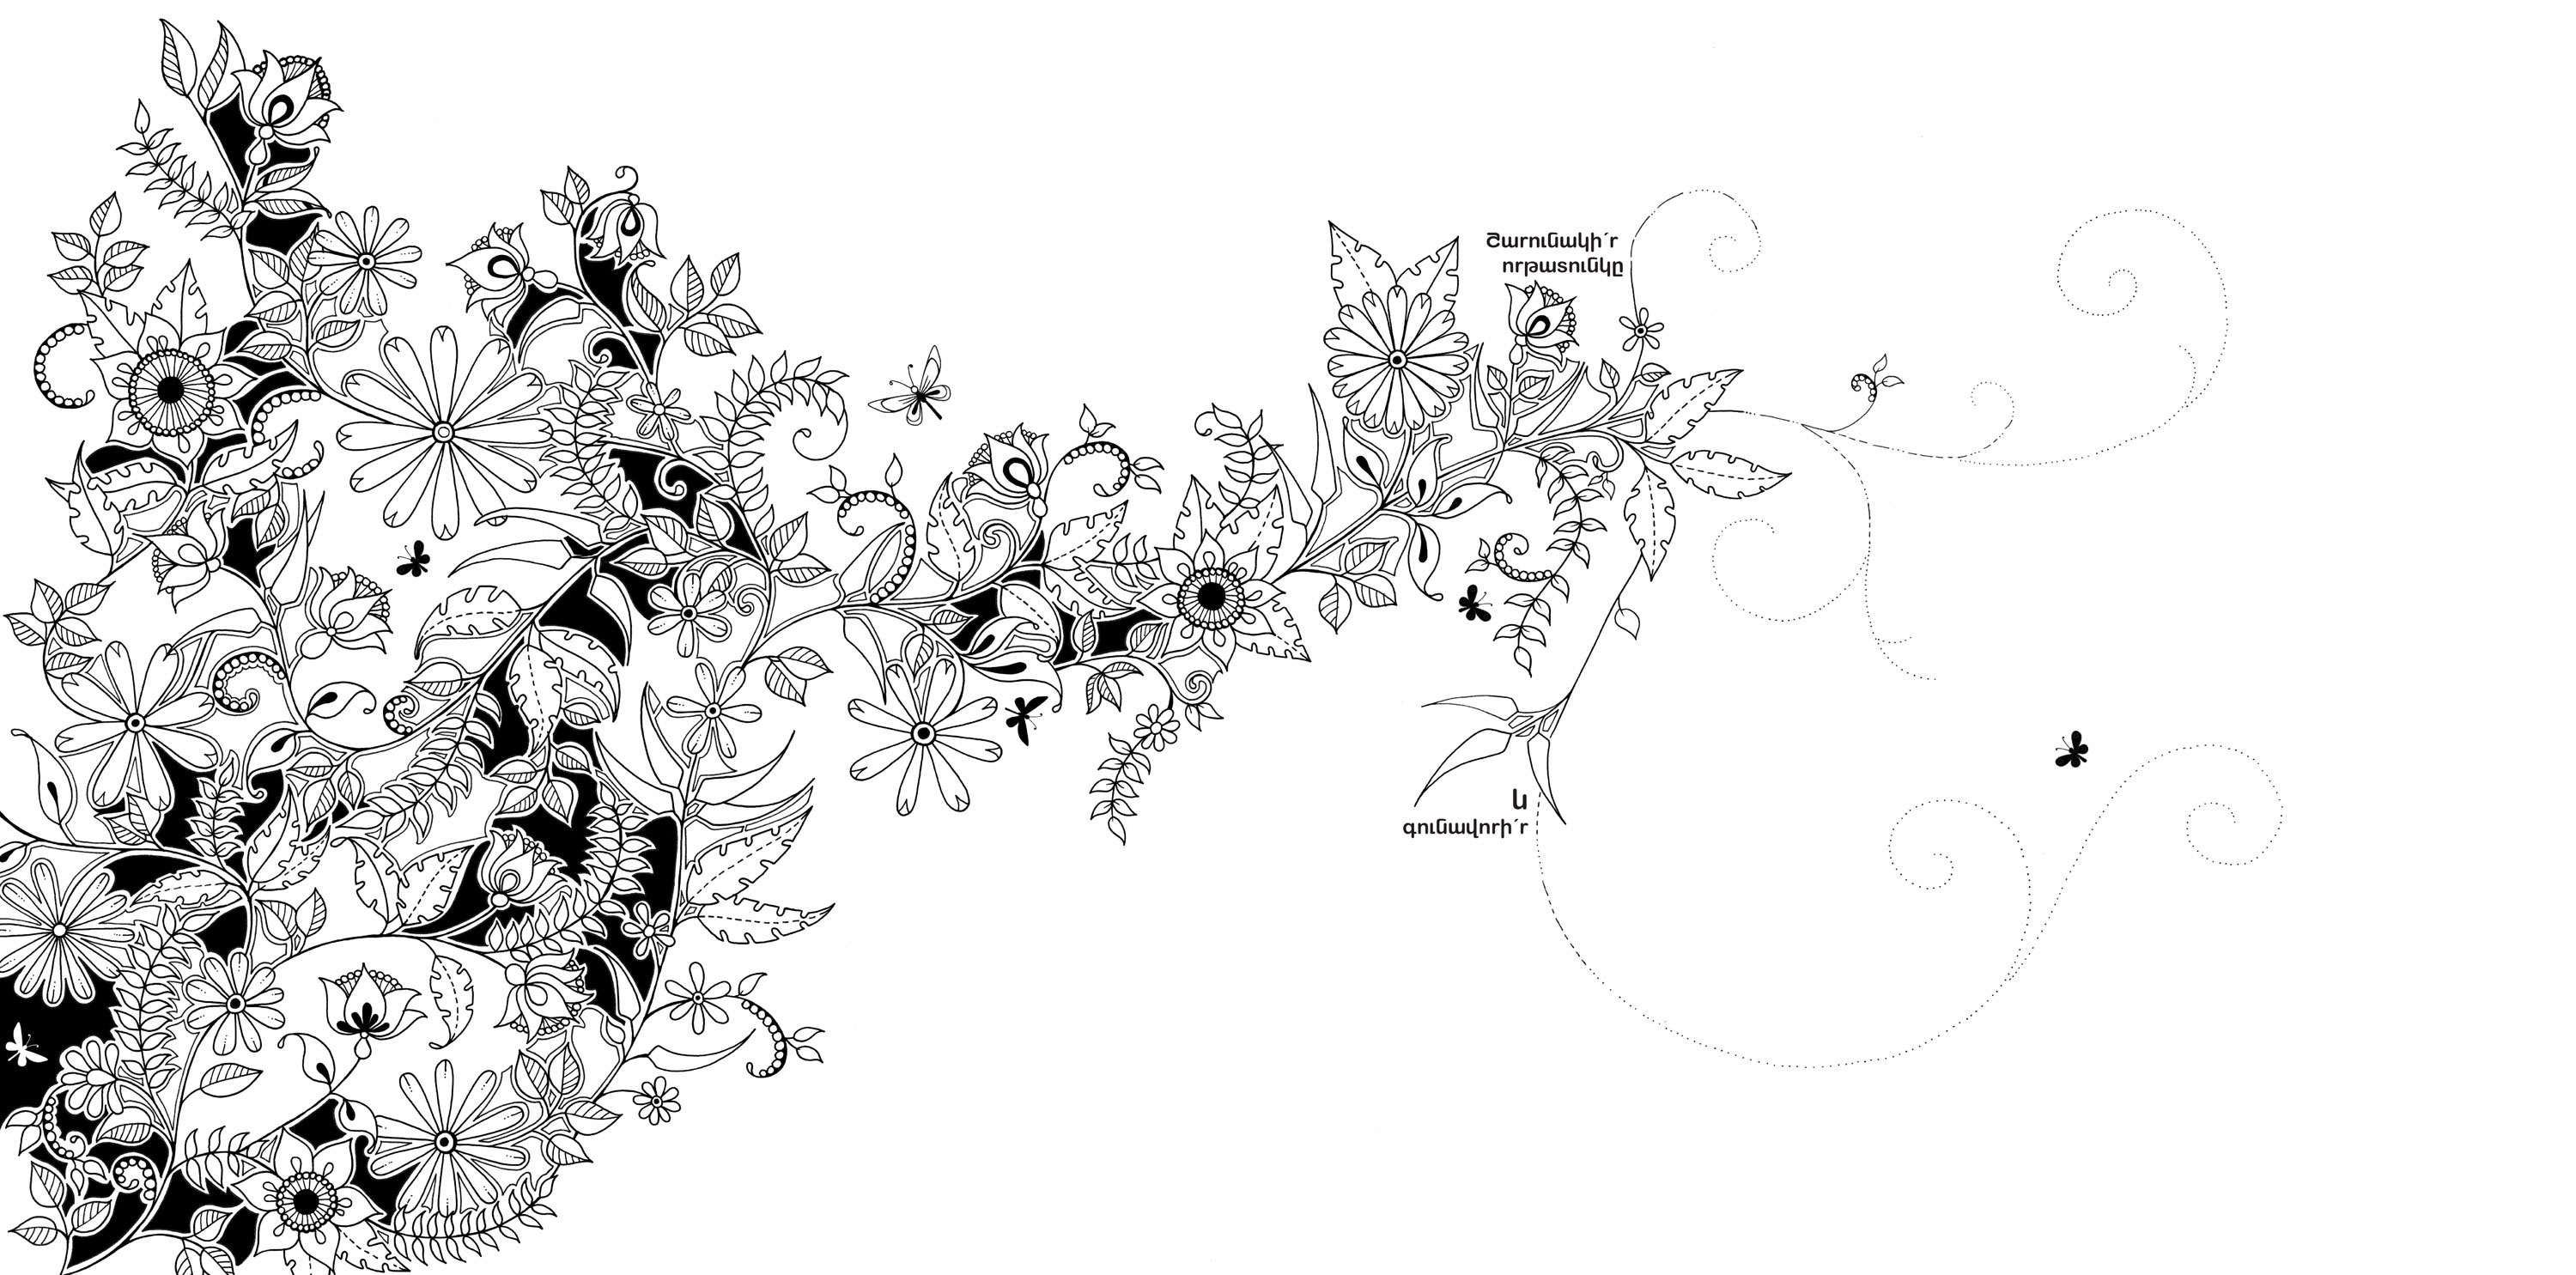 enchanted forest coloring pages - product info products id=1104